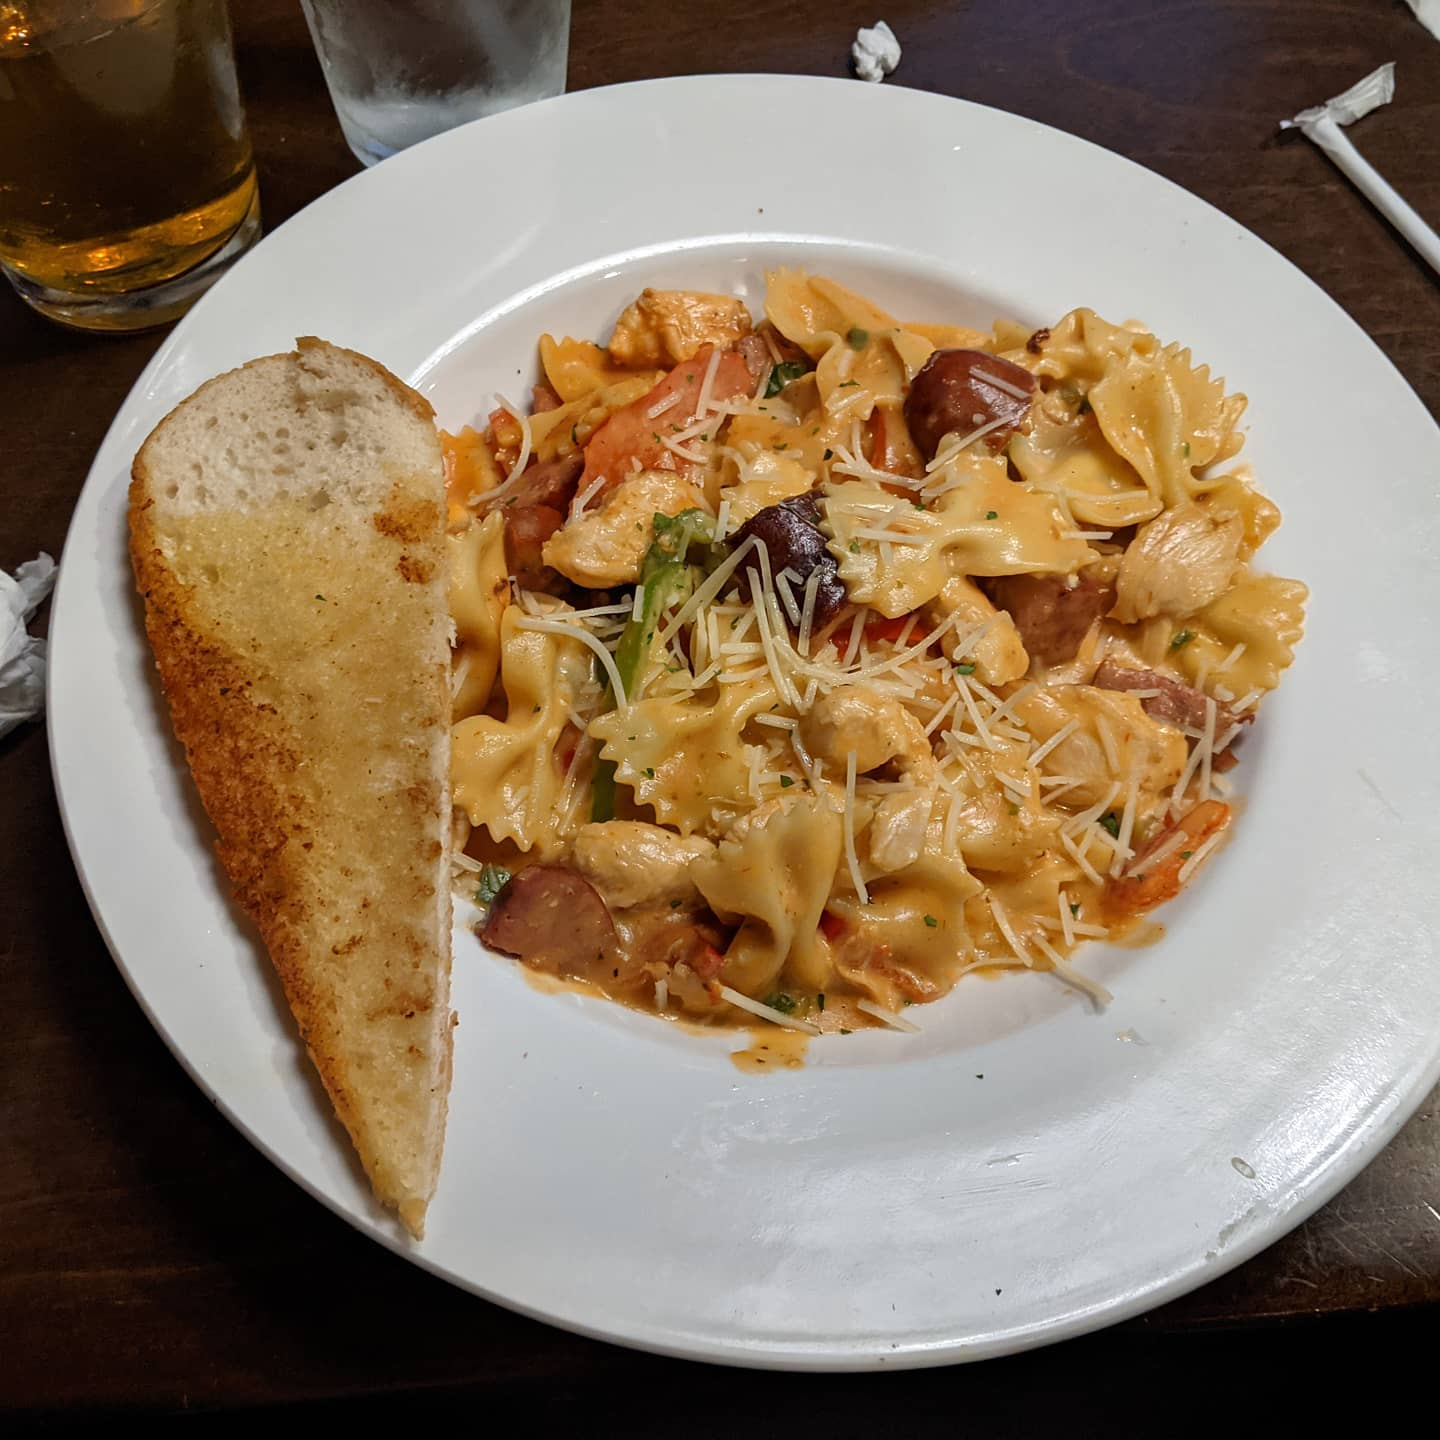 Ok it's from a chain restaurant, but even I have to admit I'm impressed with this Jambalaya Pasta in rural East Texas #foodporn #easttexas